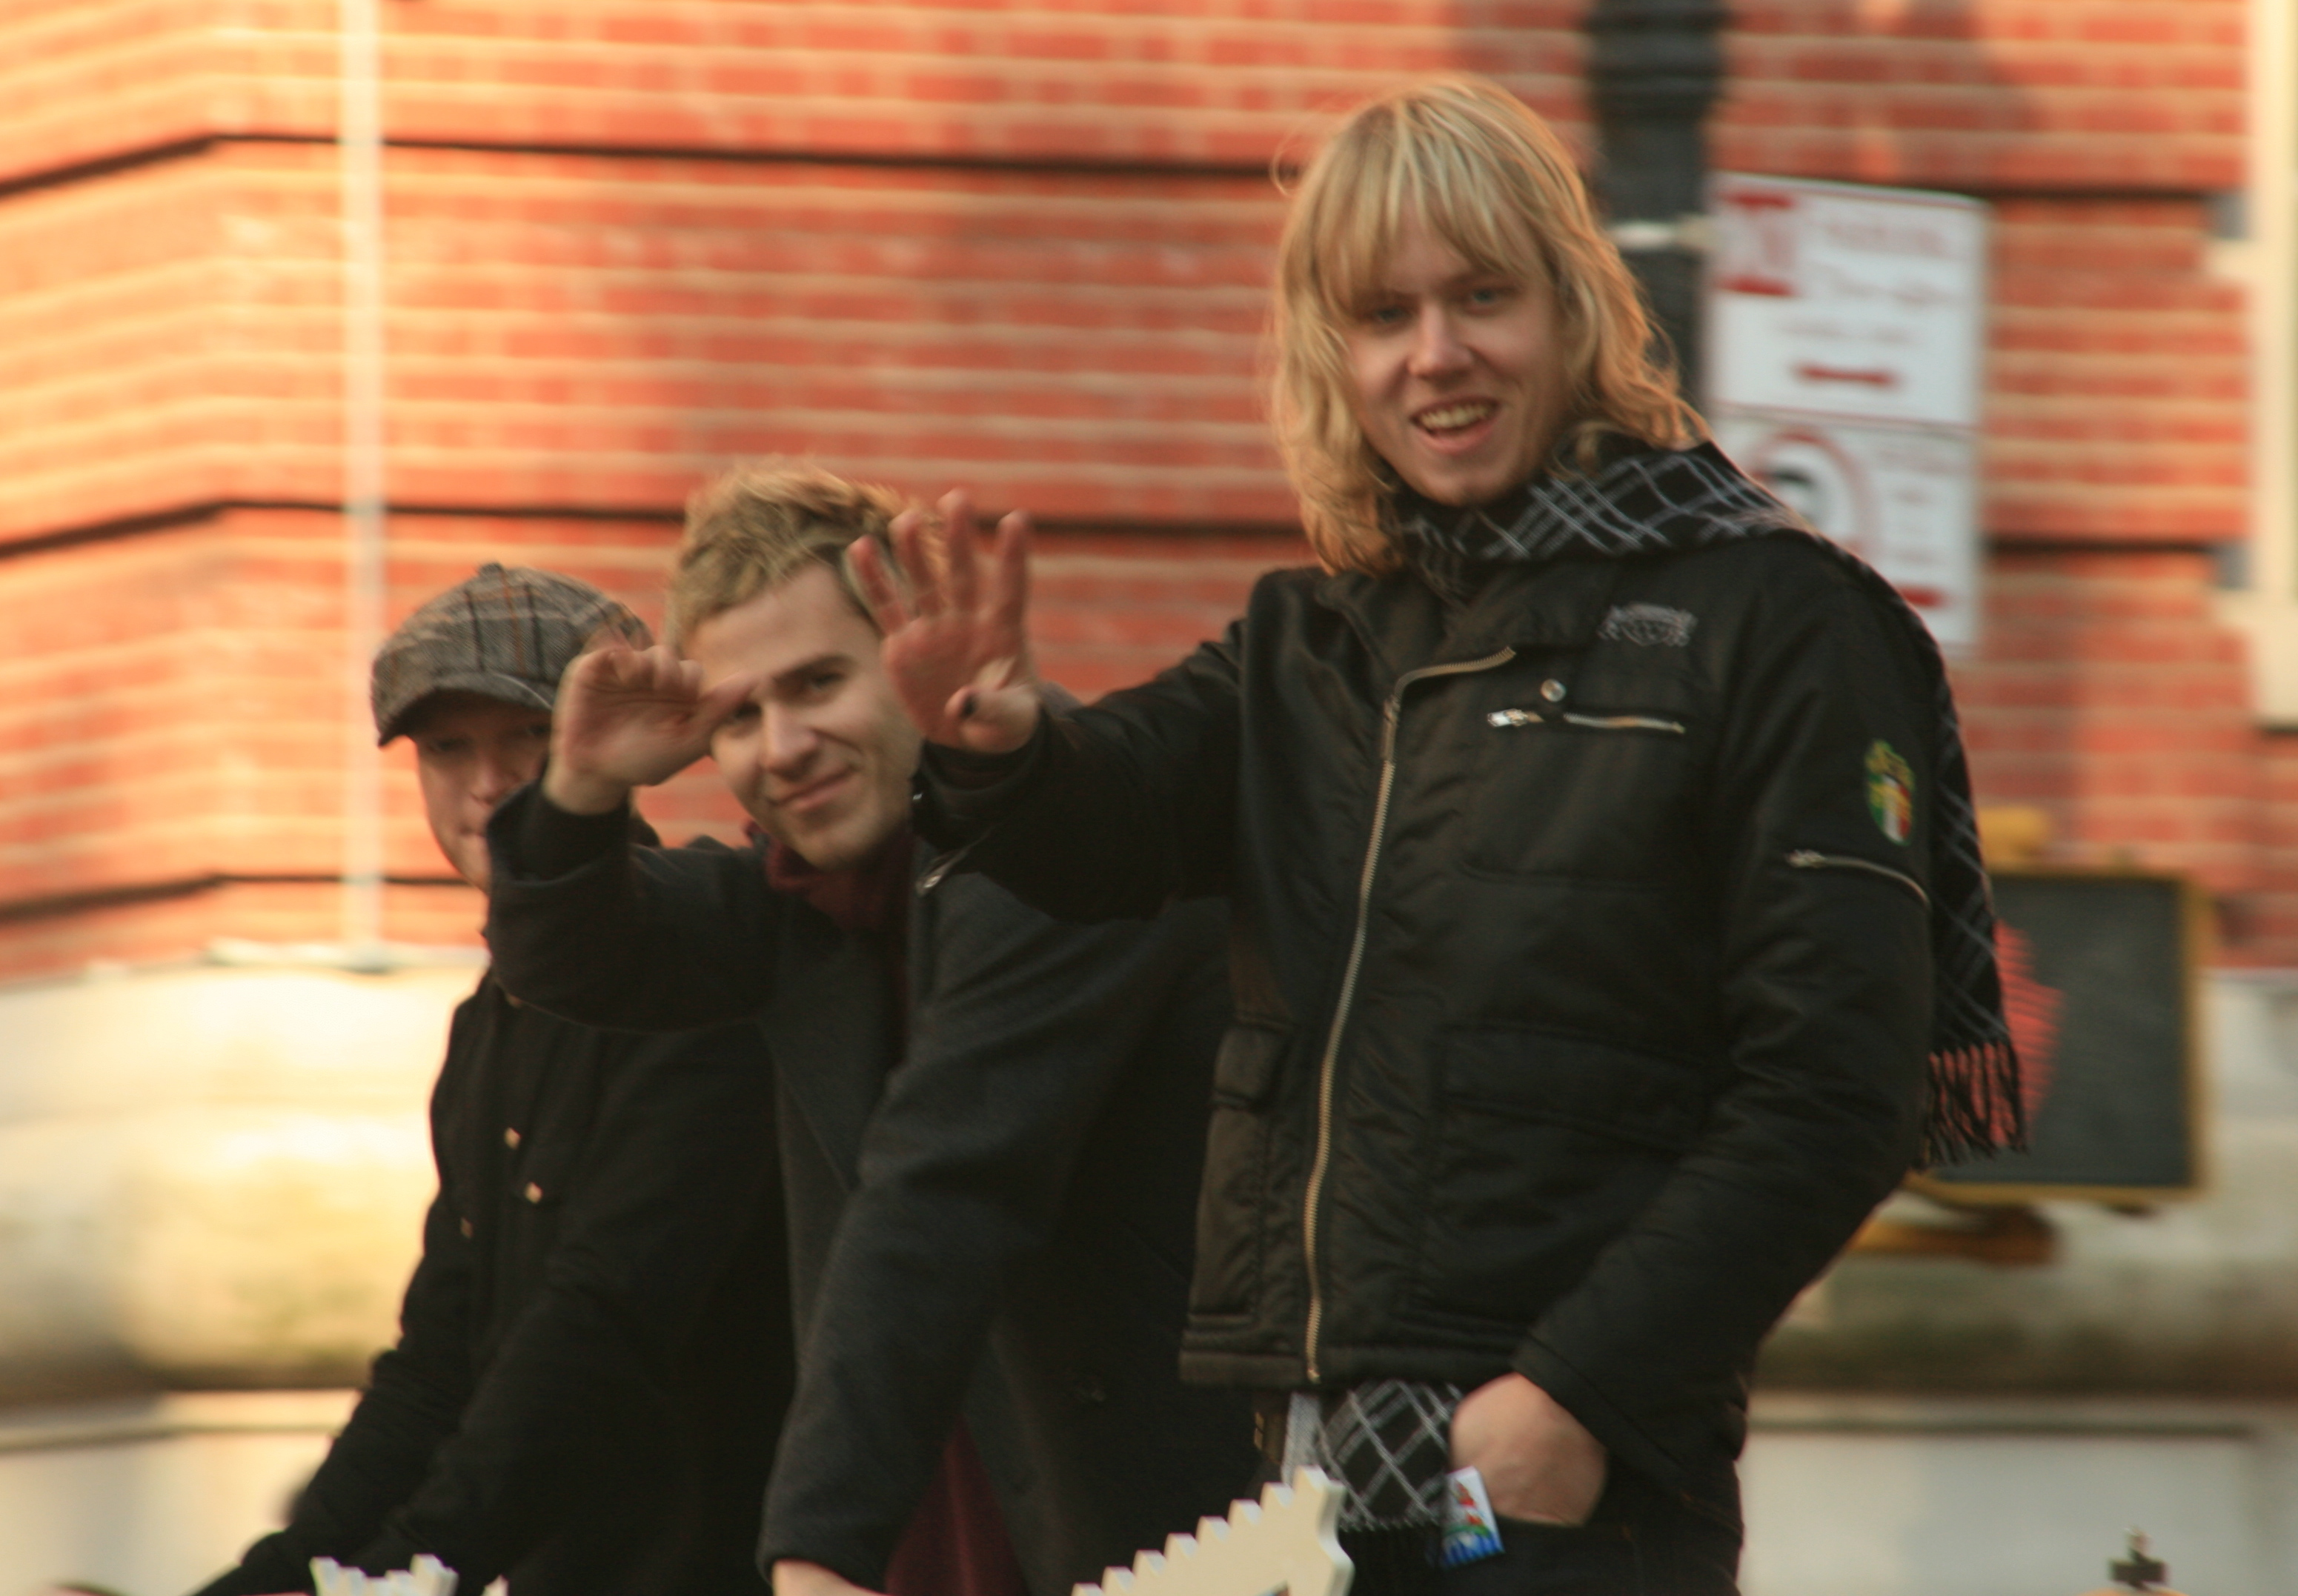 Lifehouse at [[Macy's Thanksgiving Day Parade]] in 2007